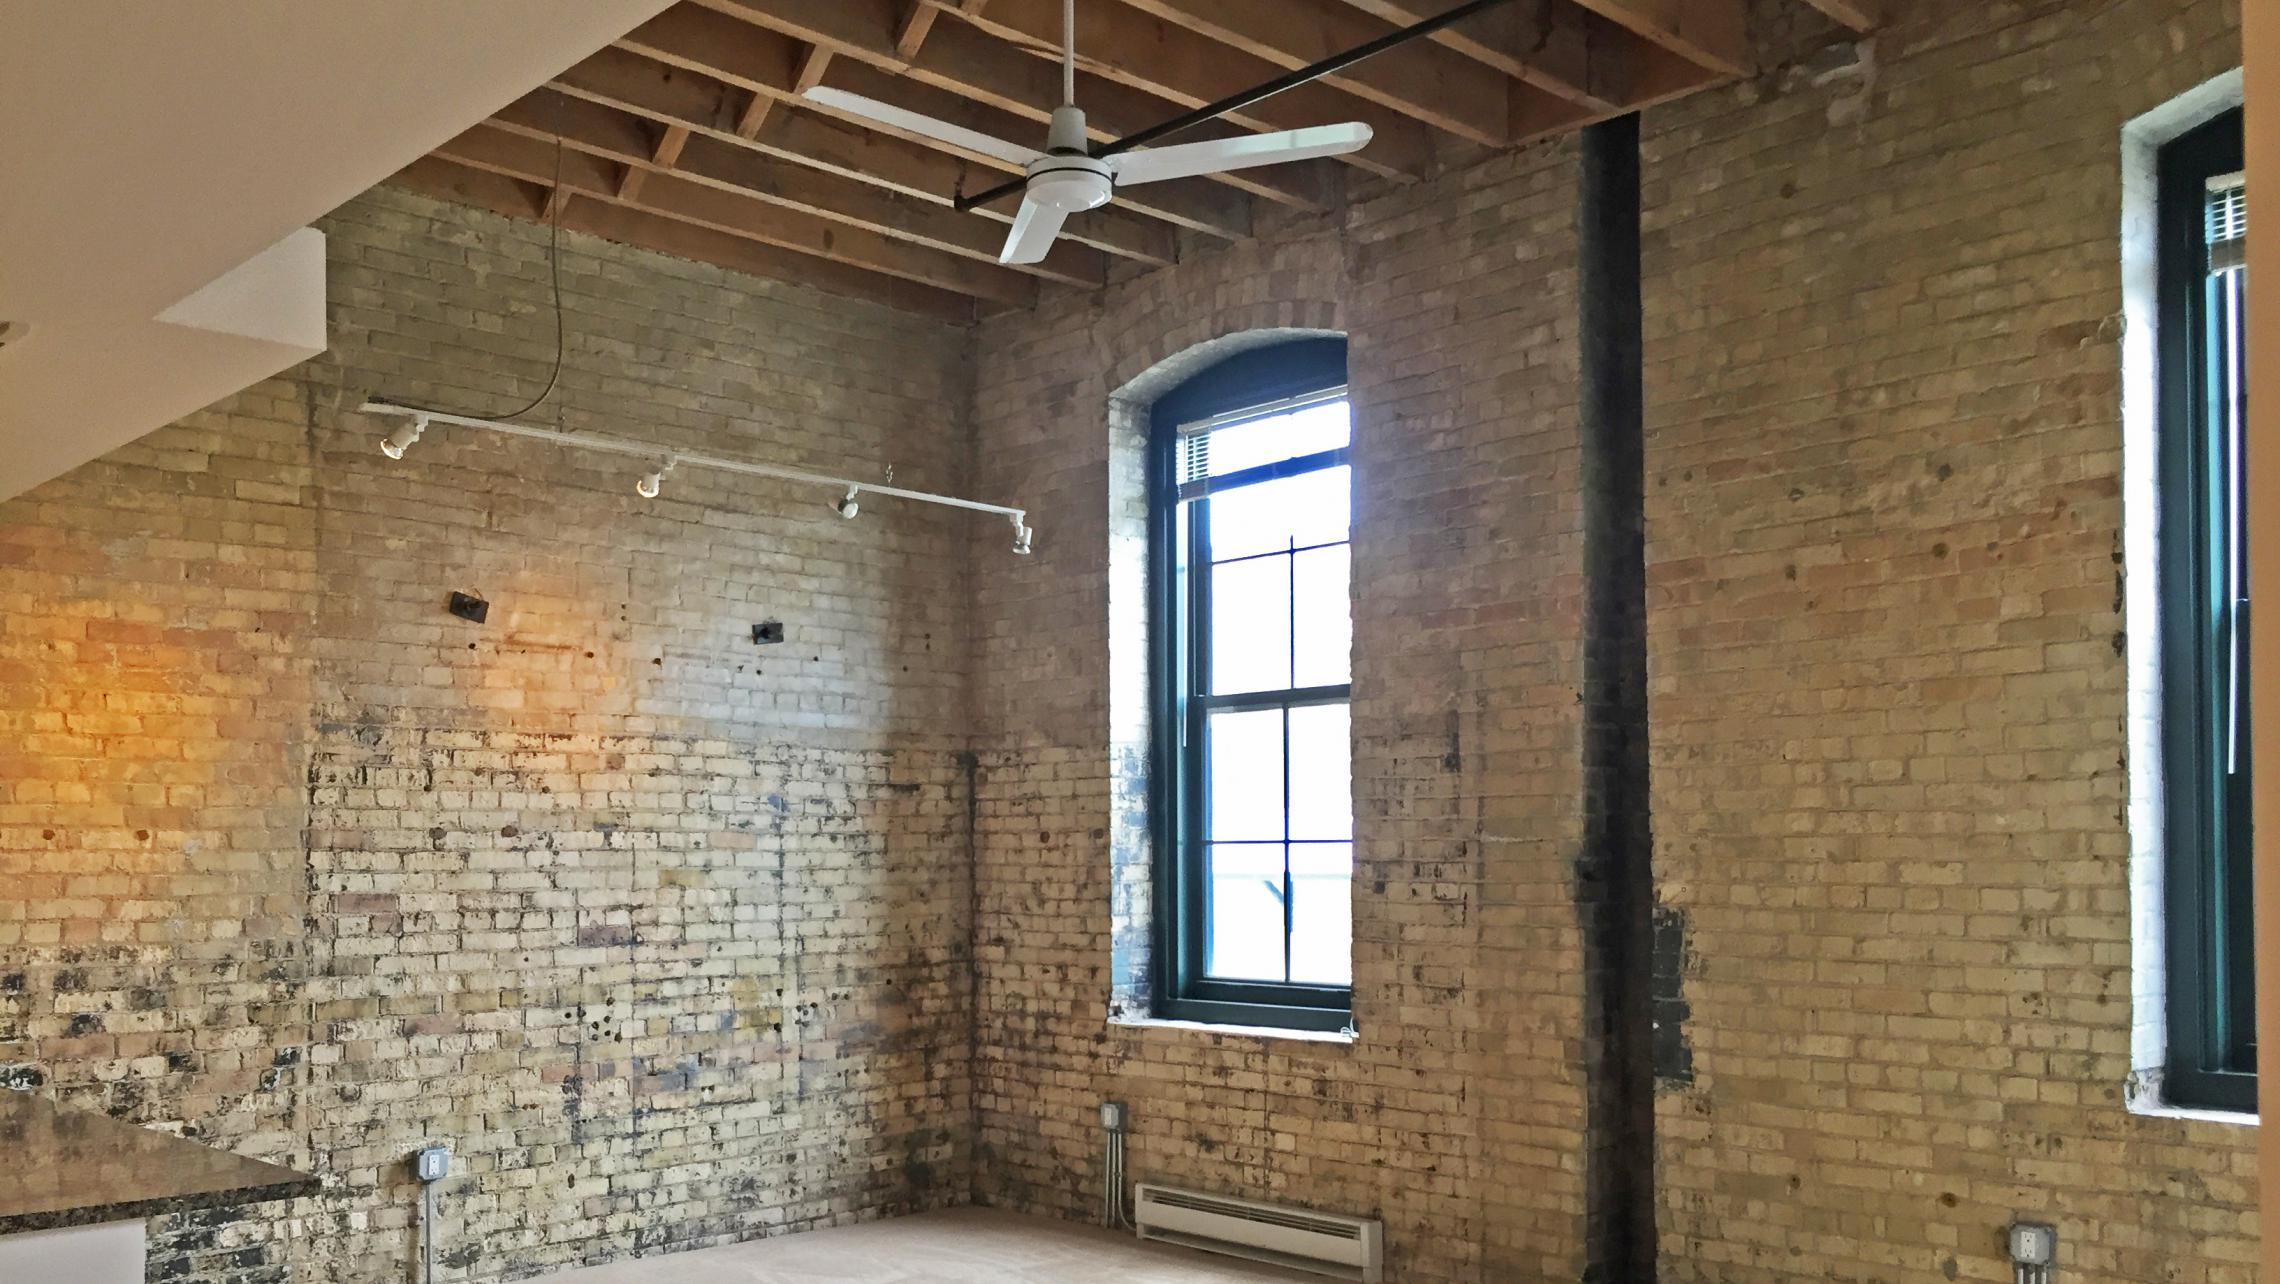 ULI Tobacco Lofts - E208 - Historic Exposed Brick